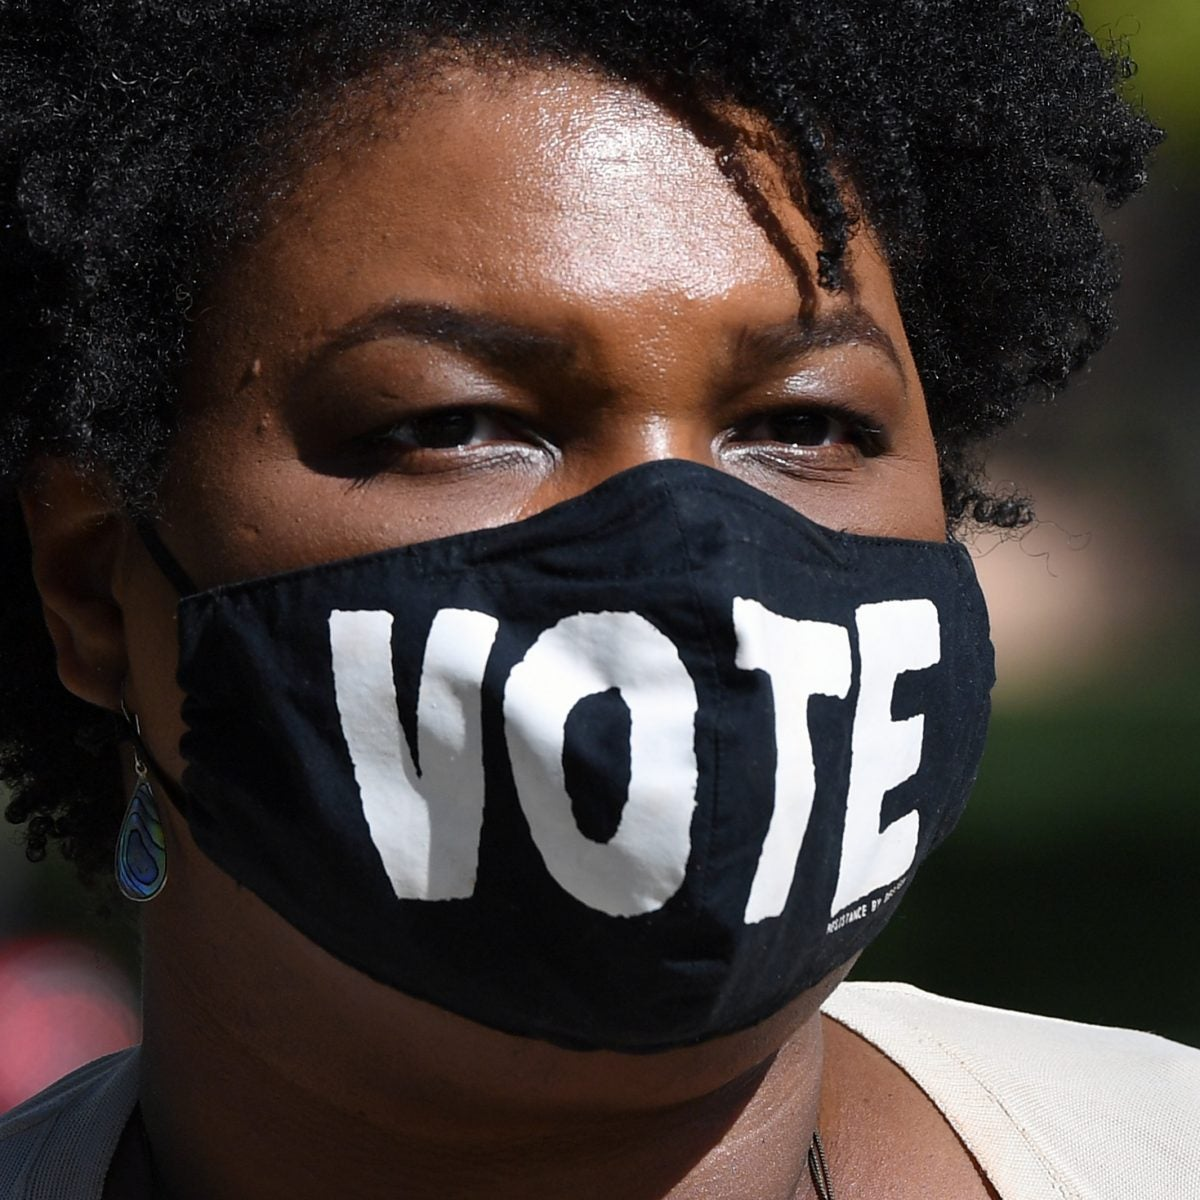 New Georgia Voter Suppression Law Being Compared to 'Jim Crow' Era